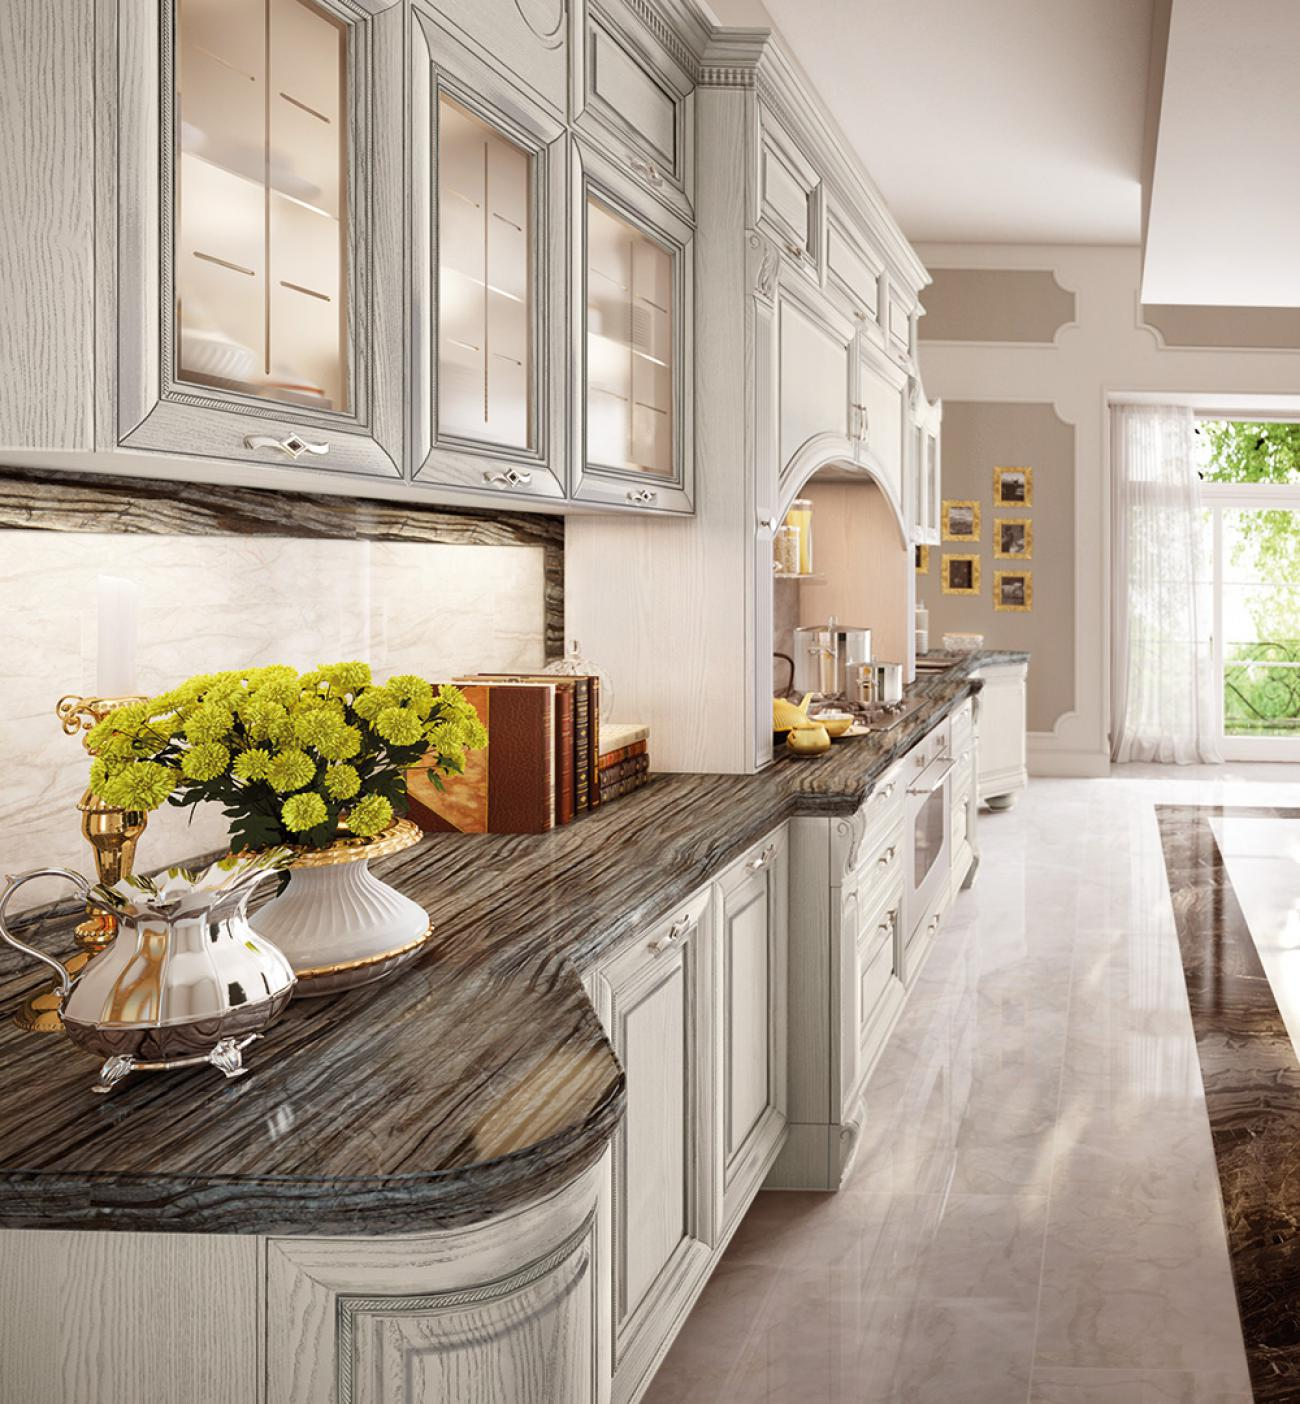 Classic Kitchens - Pantheon - 06